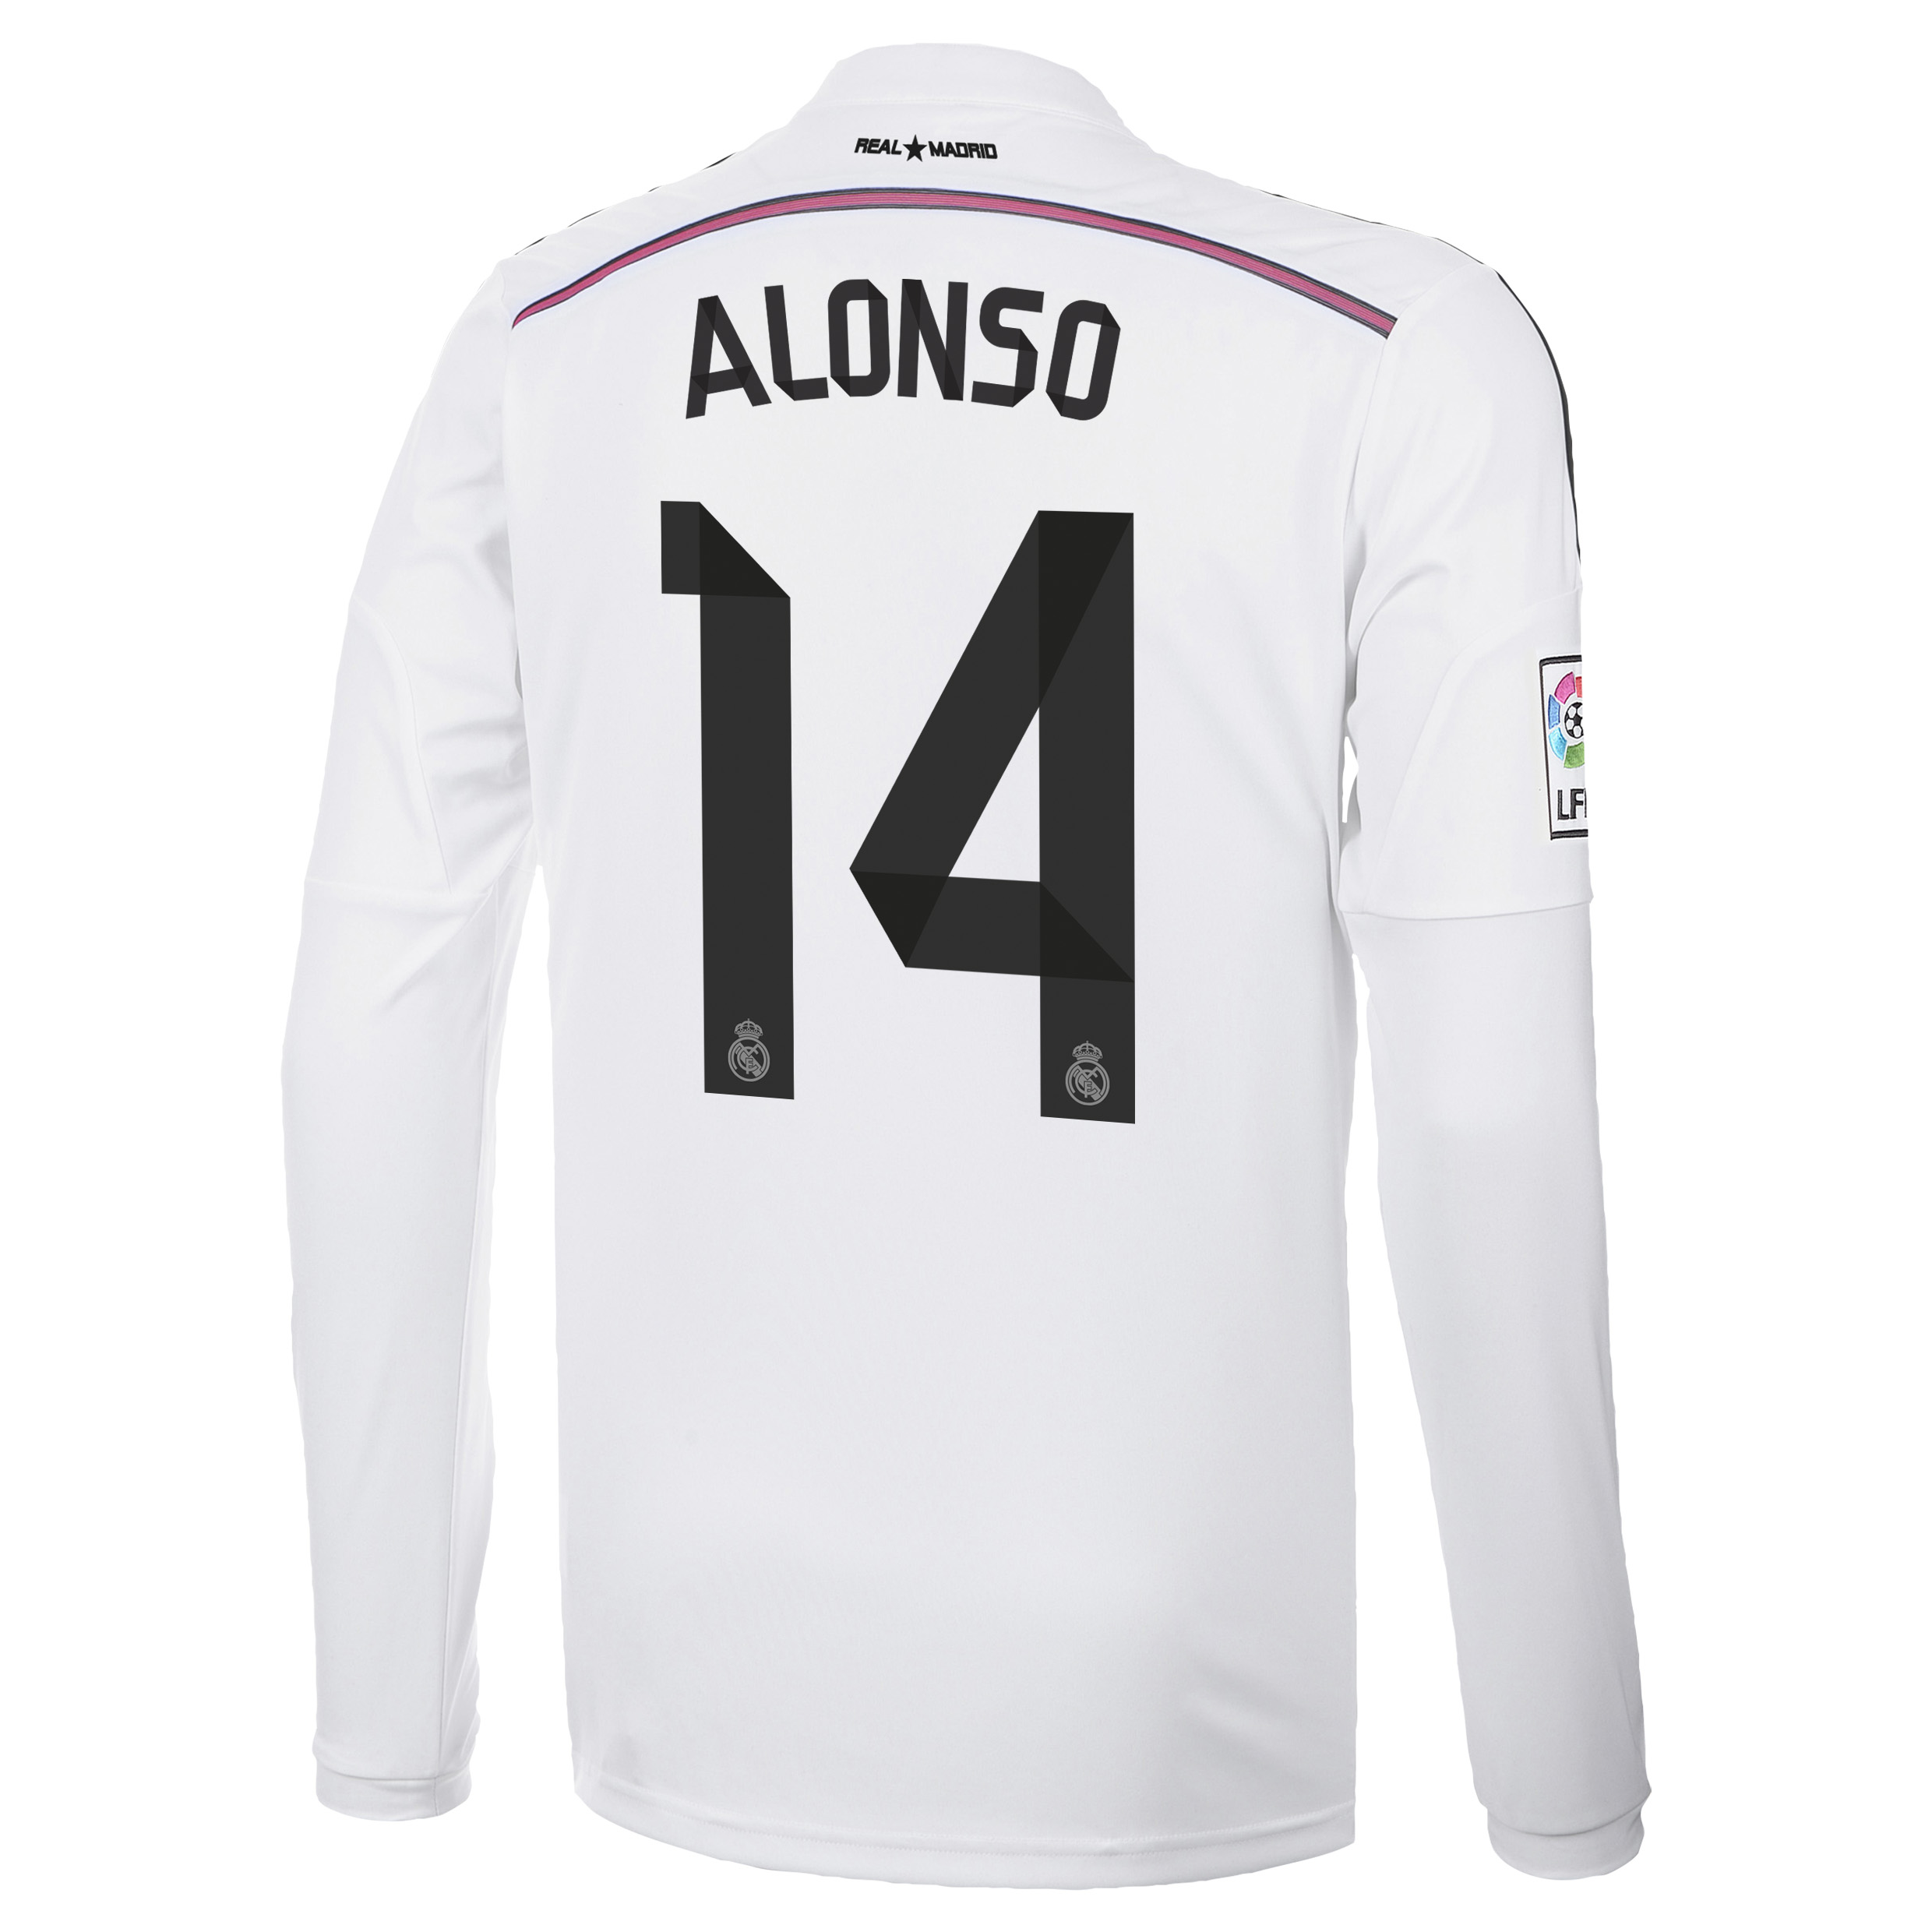 Real Madrid Home Shirt 2014/15 Long Sleeve with Alonso 14 printing